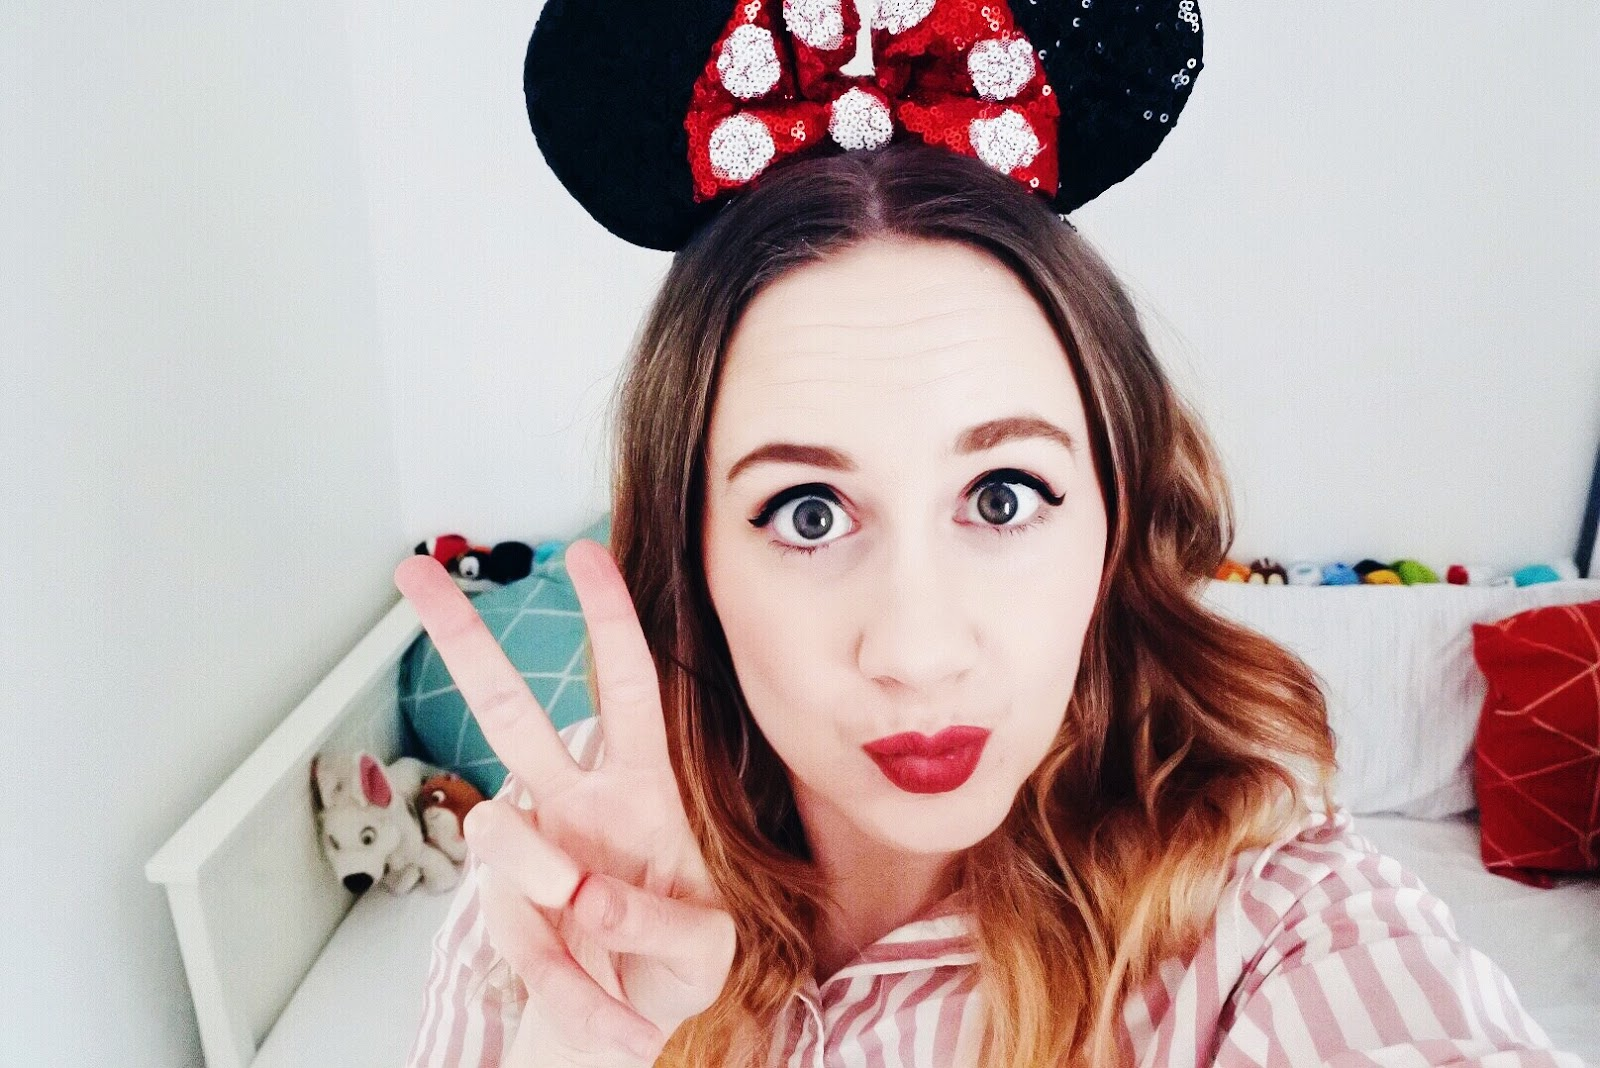 Jemma taking a selfie wearing sequin Minnie Mouse ears.